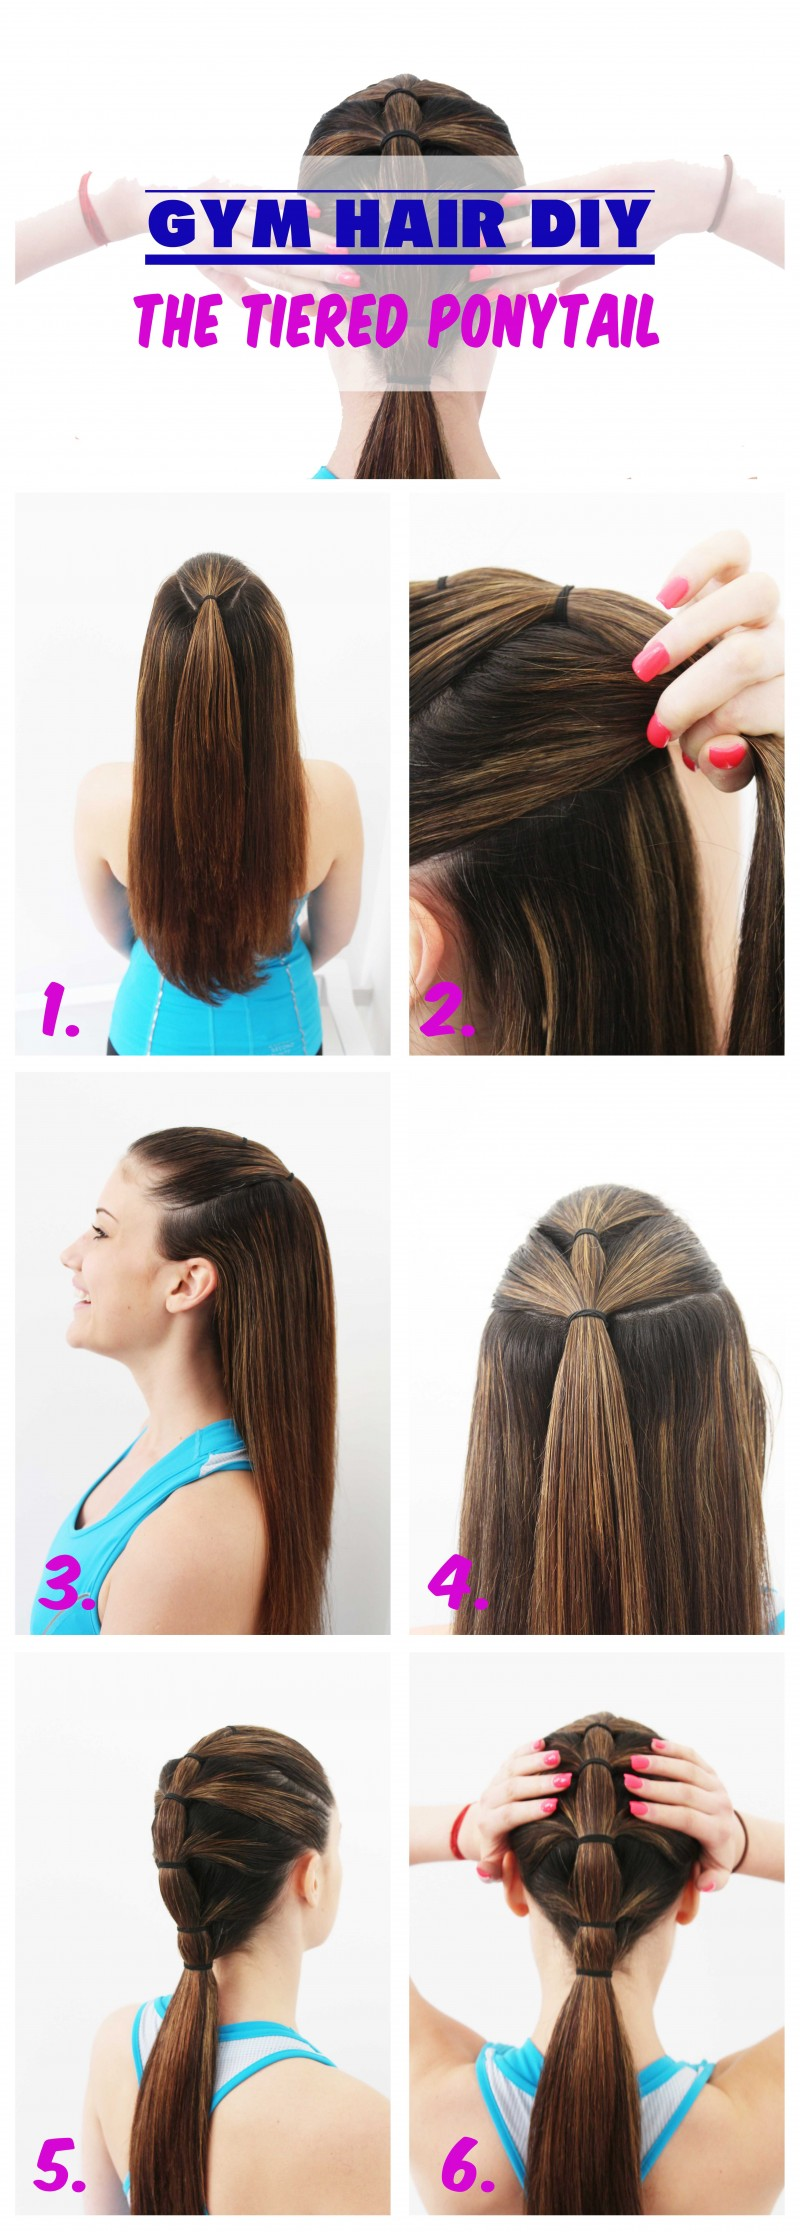 Gym Hair Tutorial : The Tiered Ponytail